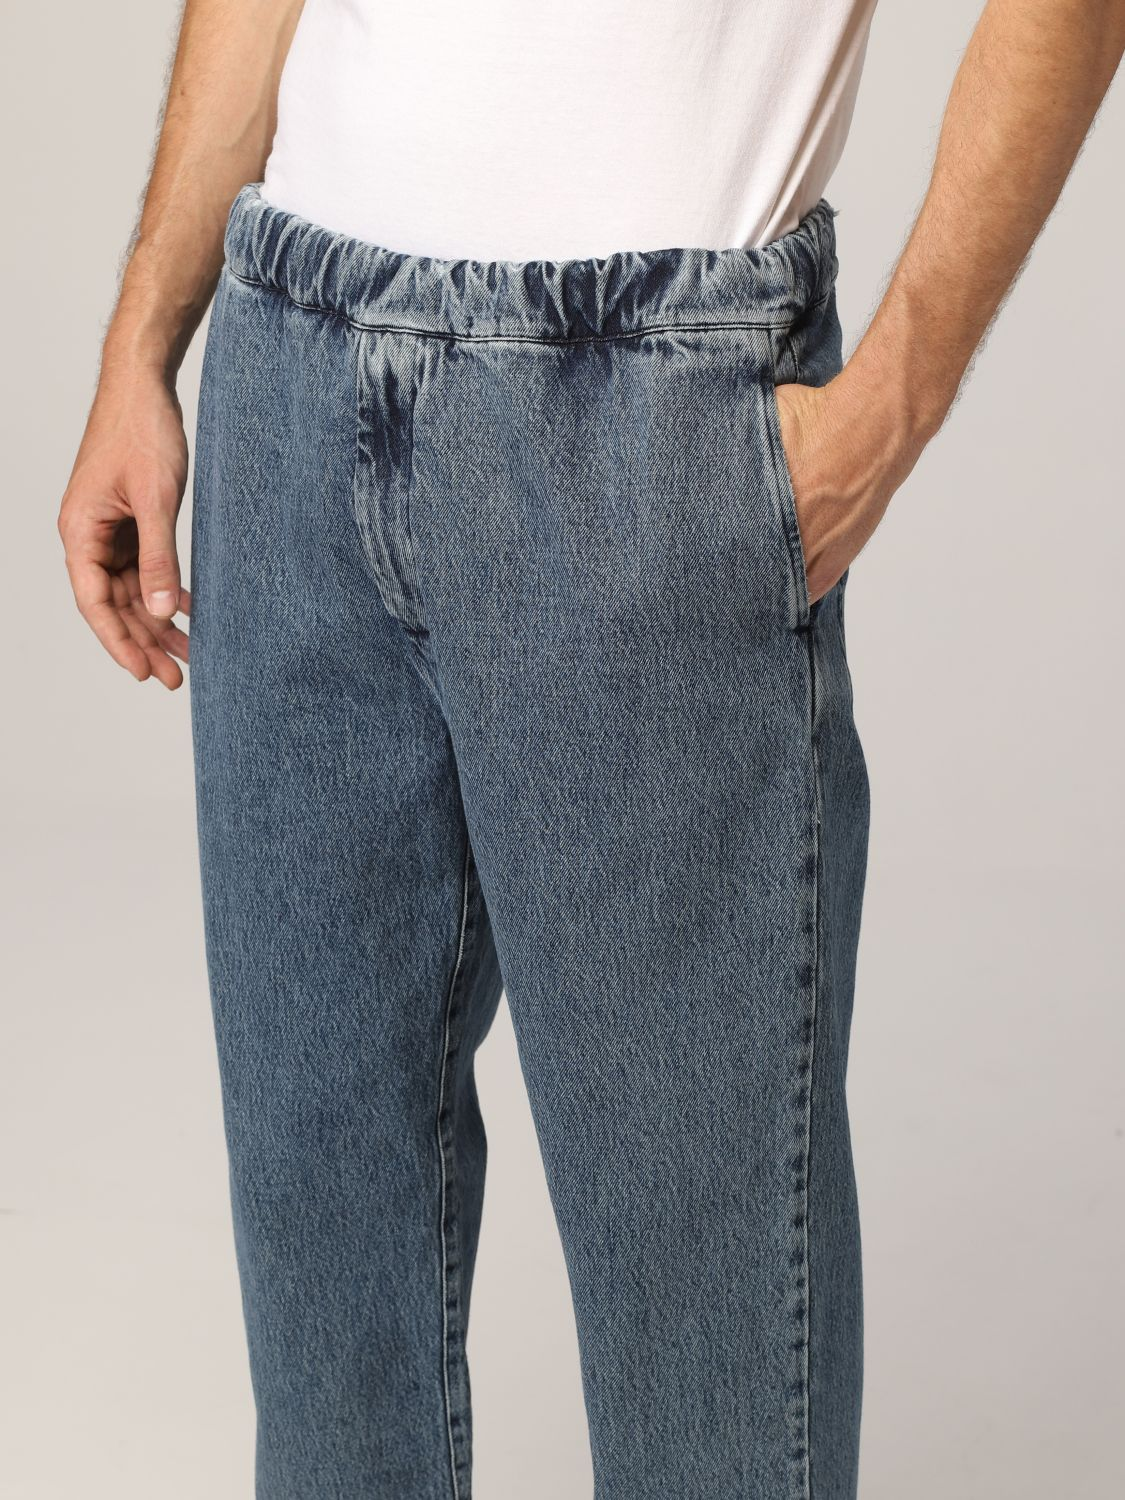 Jeans Silted: Jeans hombre Silted azul oscuro 4